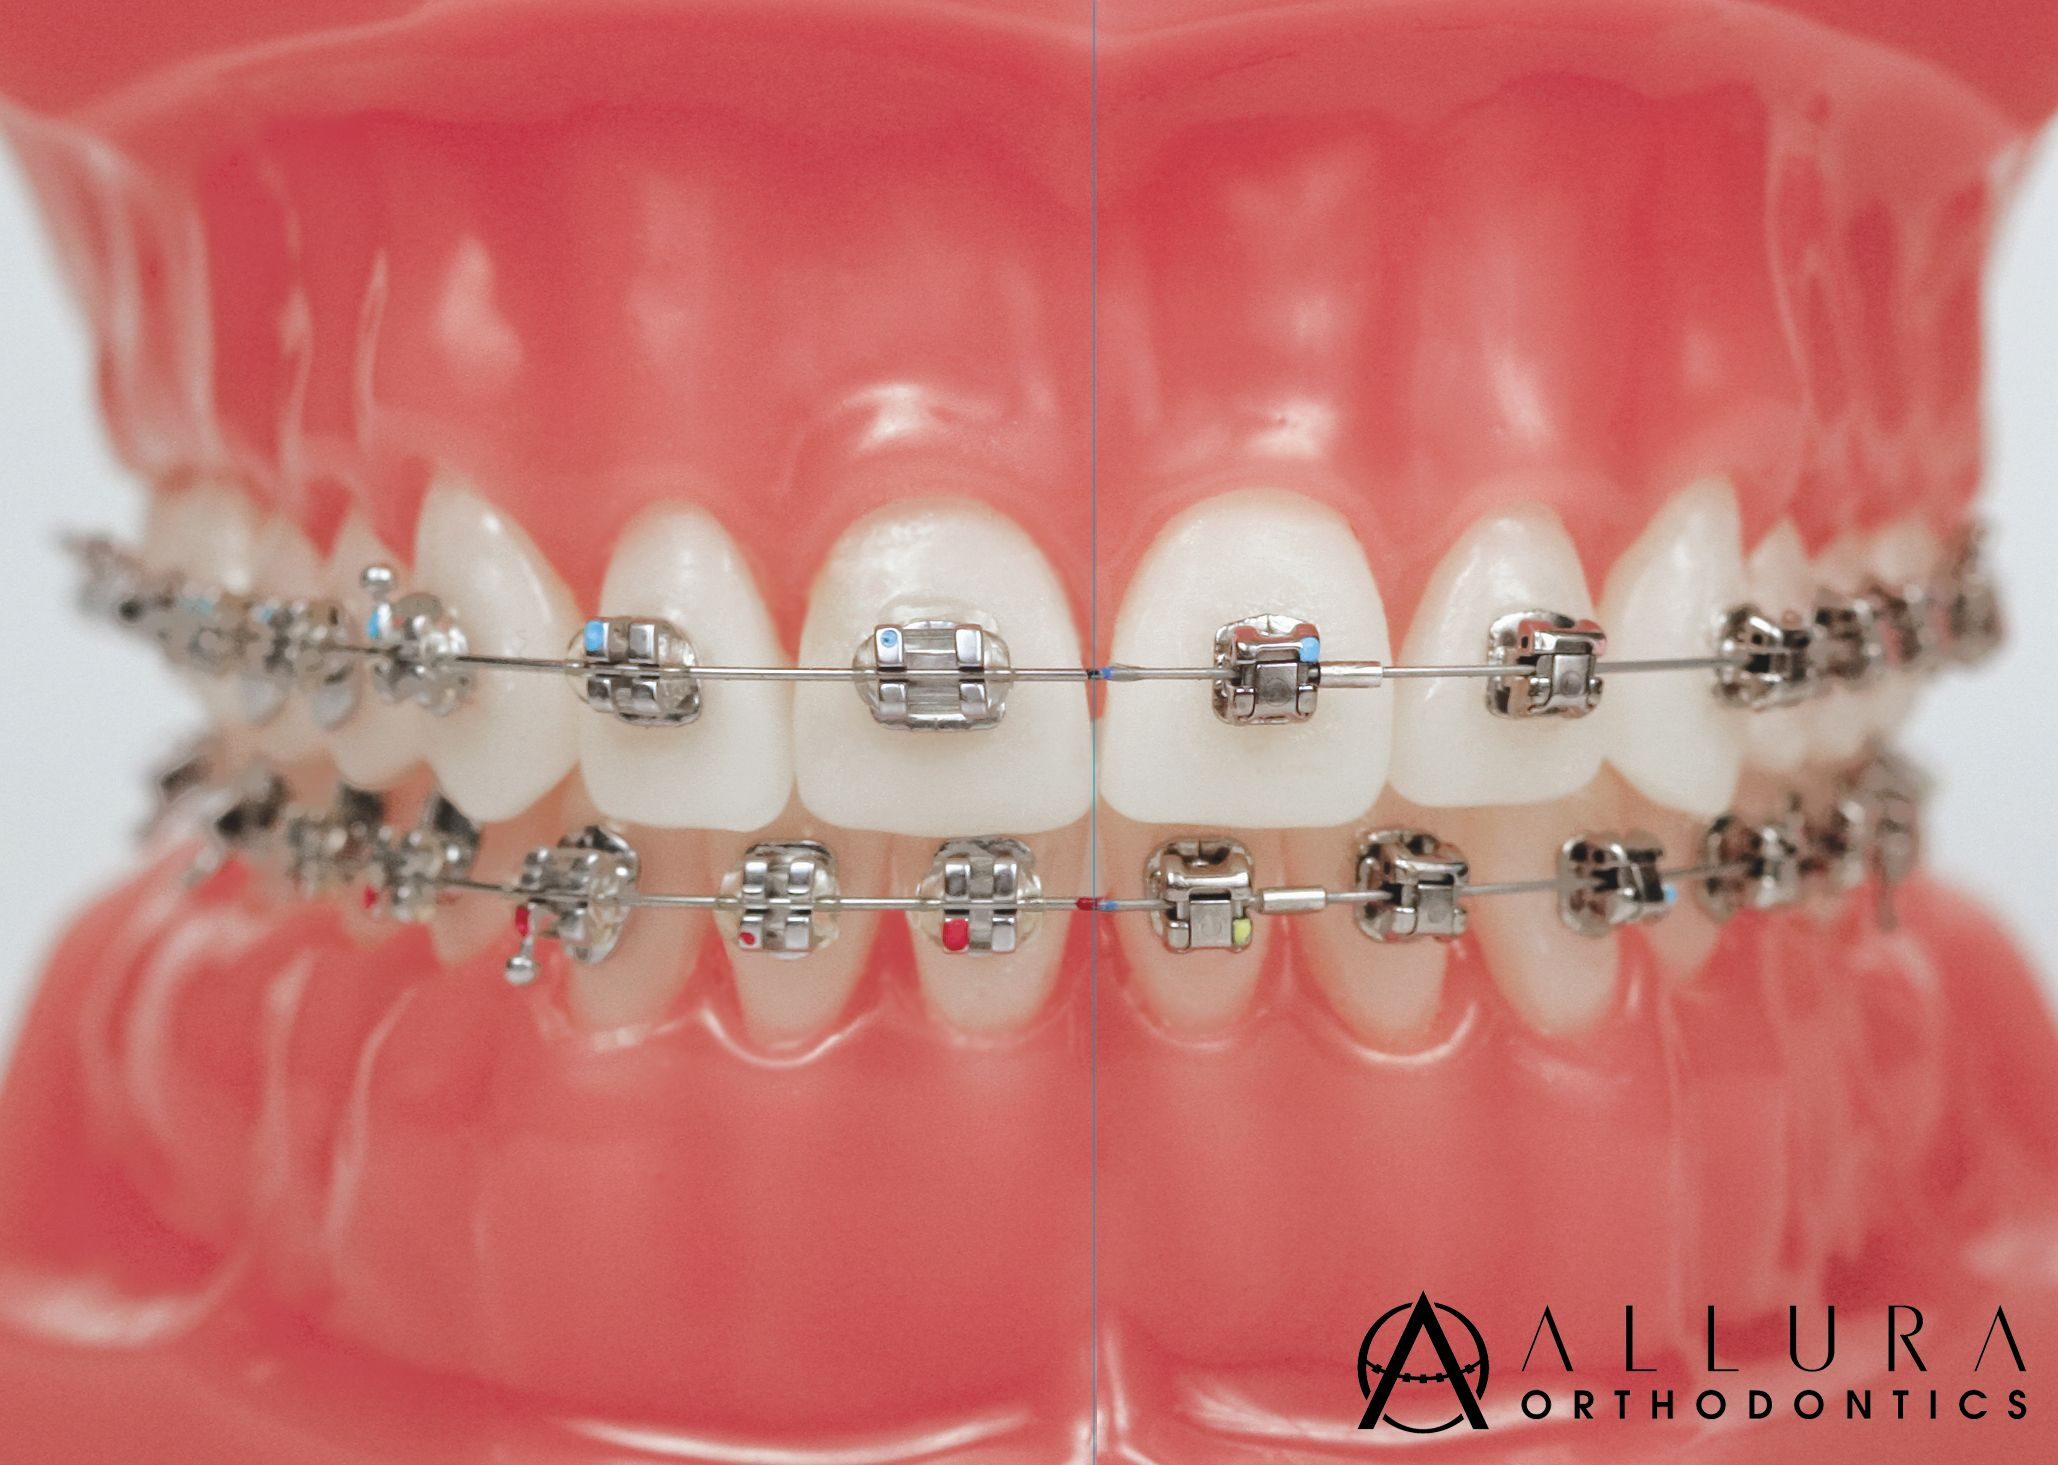 Metal braces also have a new, fun twist without any extra